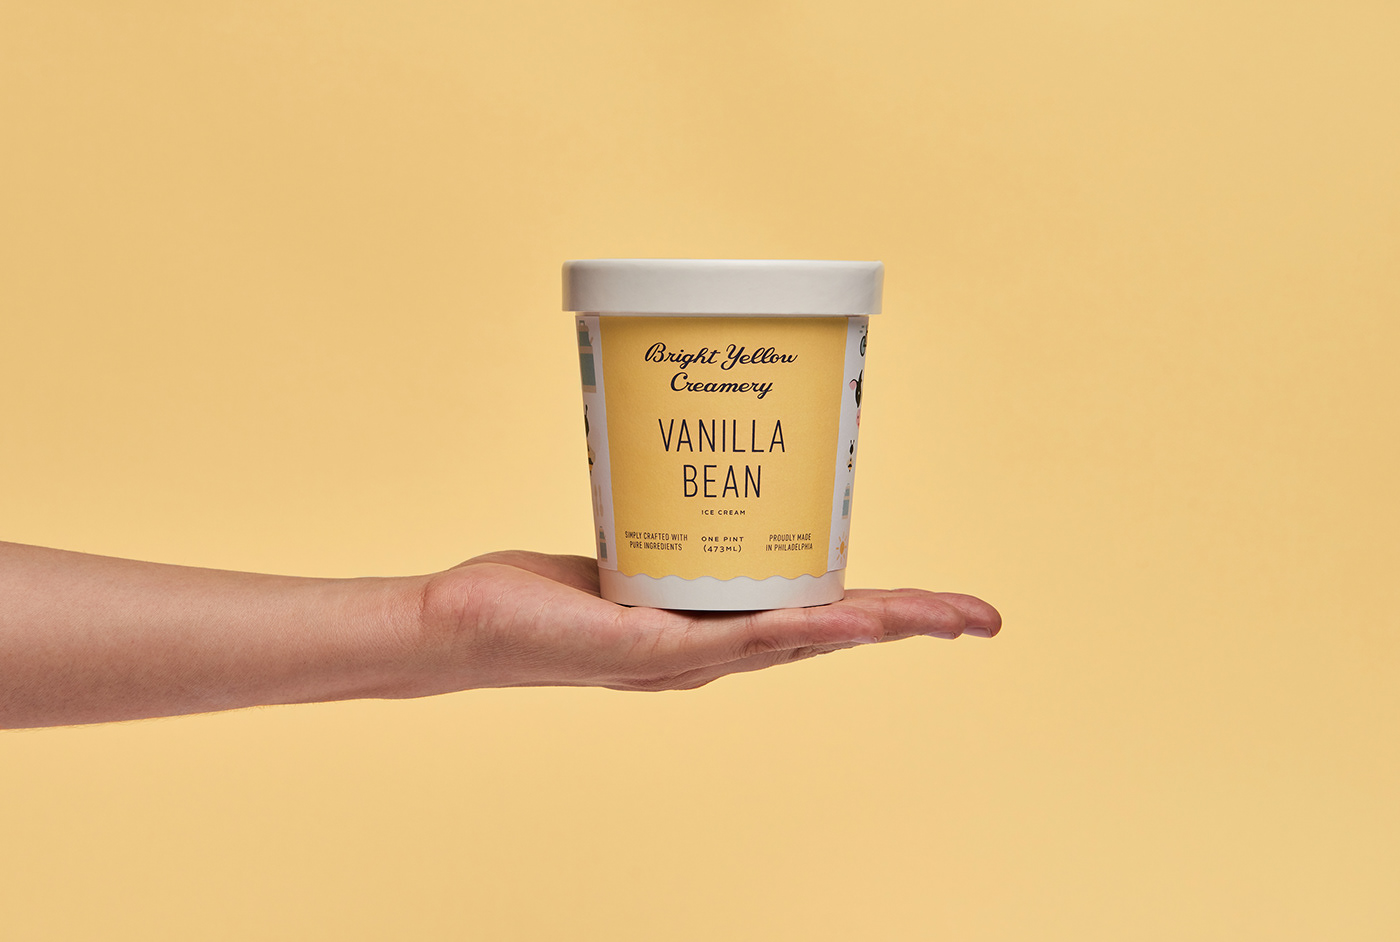 Delicious Ice Cream Branding Celebrating the Simple Pleasures of Life / World Brand & Packaging Design Society